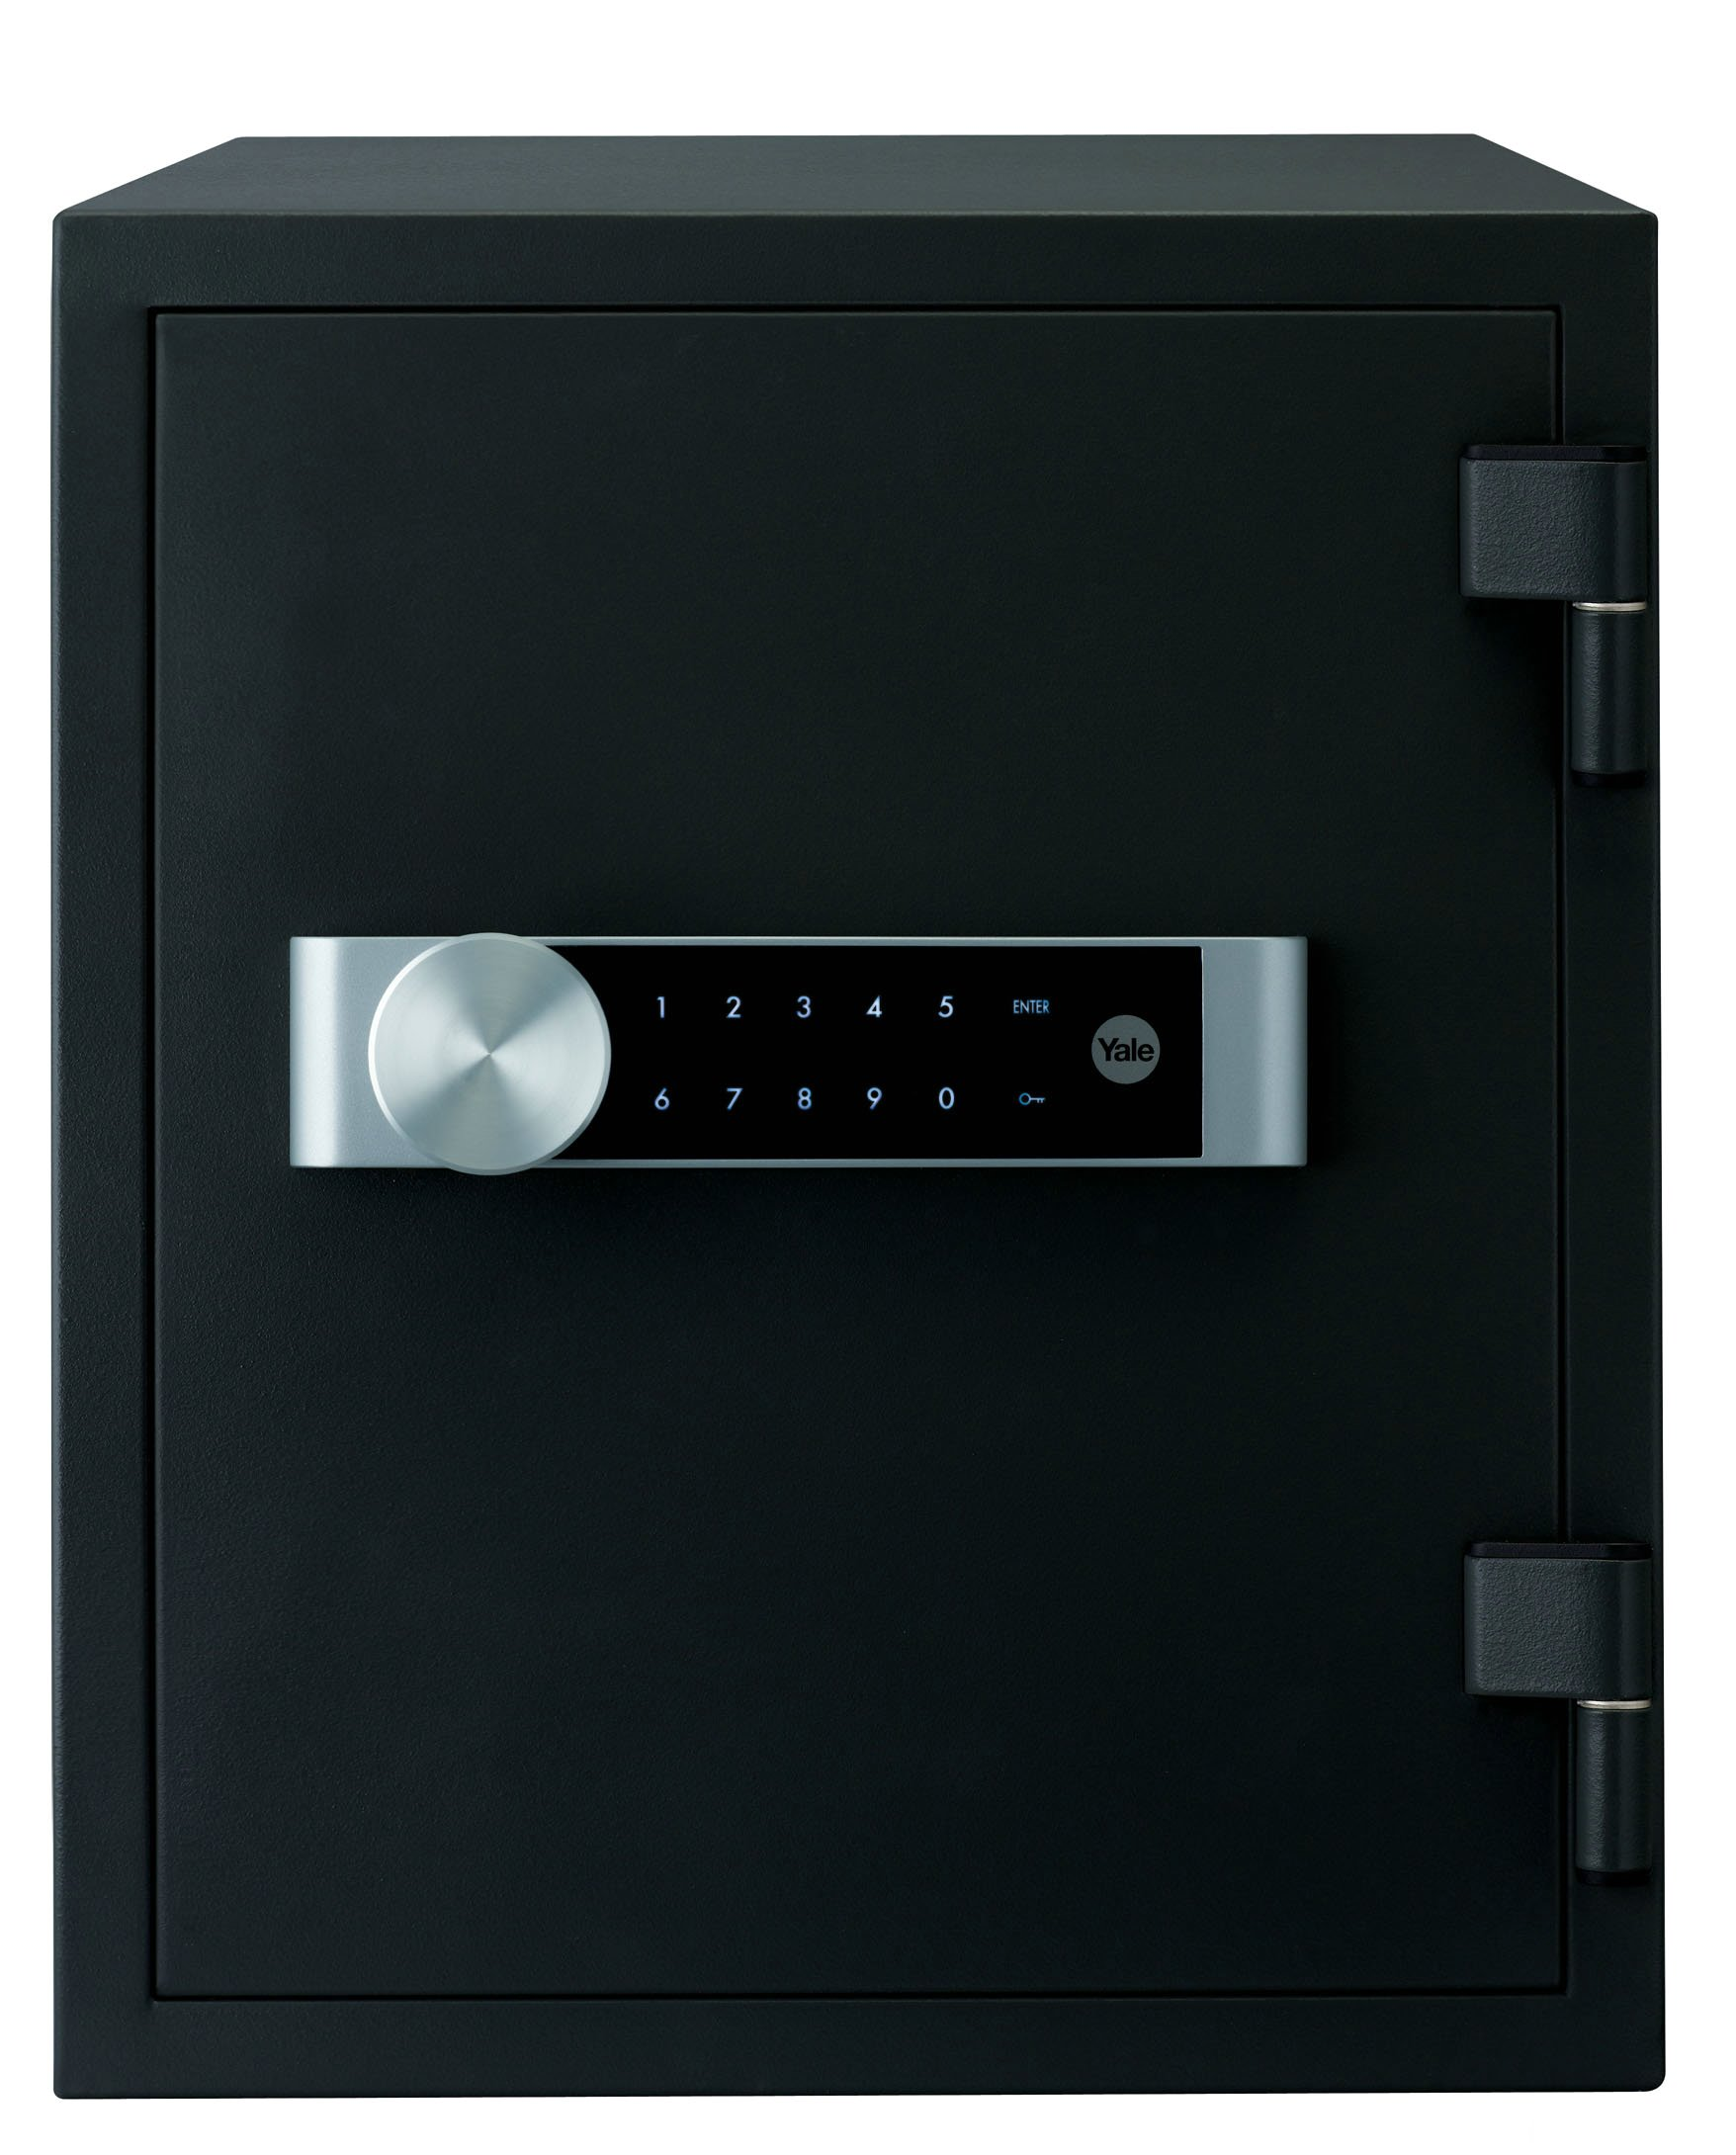 YDM/420/FG3 - Large Data Fire Safe